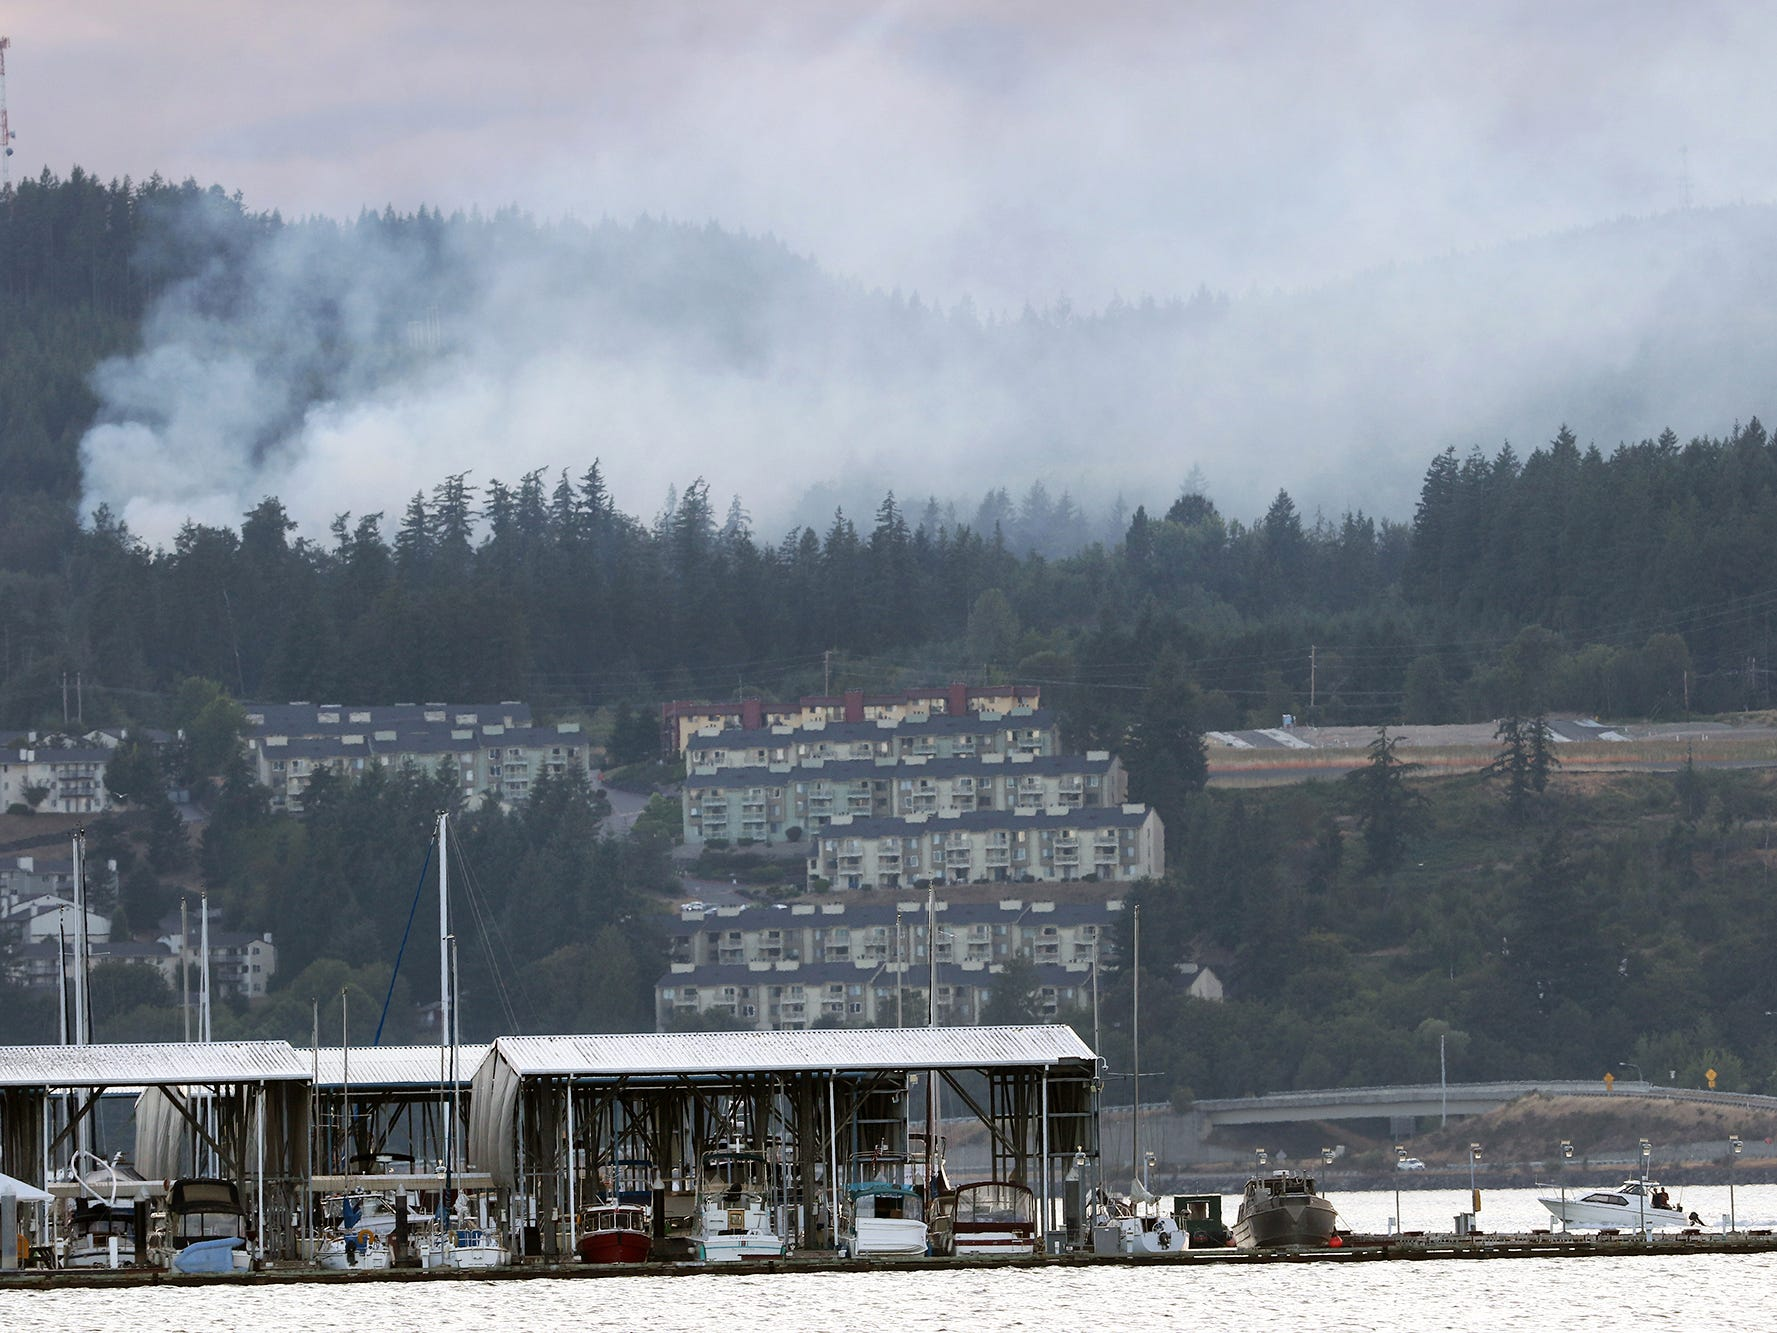 A fire burns in the Bremerton Watershed in a view from Port Orchard towards the marina on Wednesday evening.